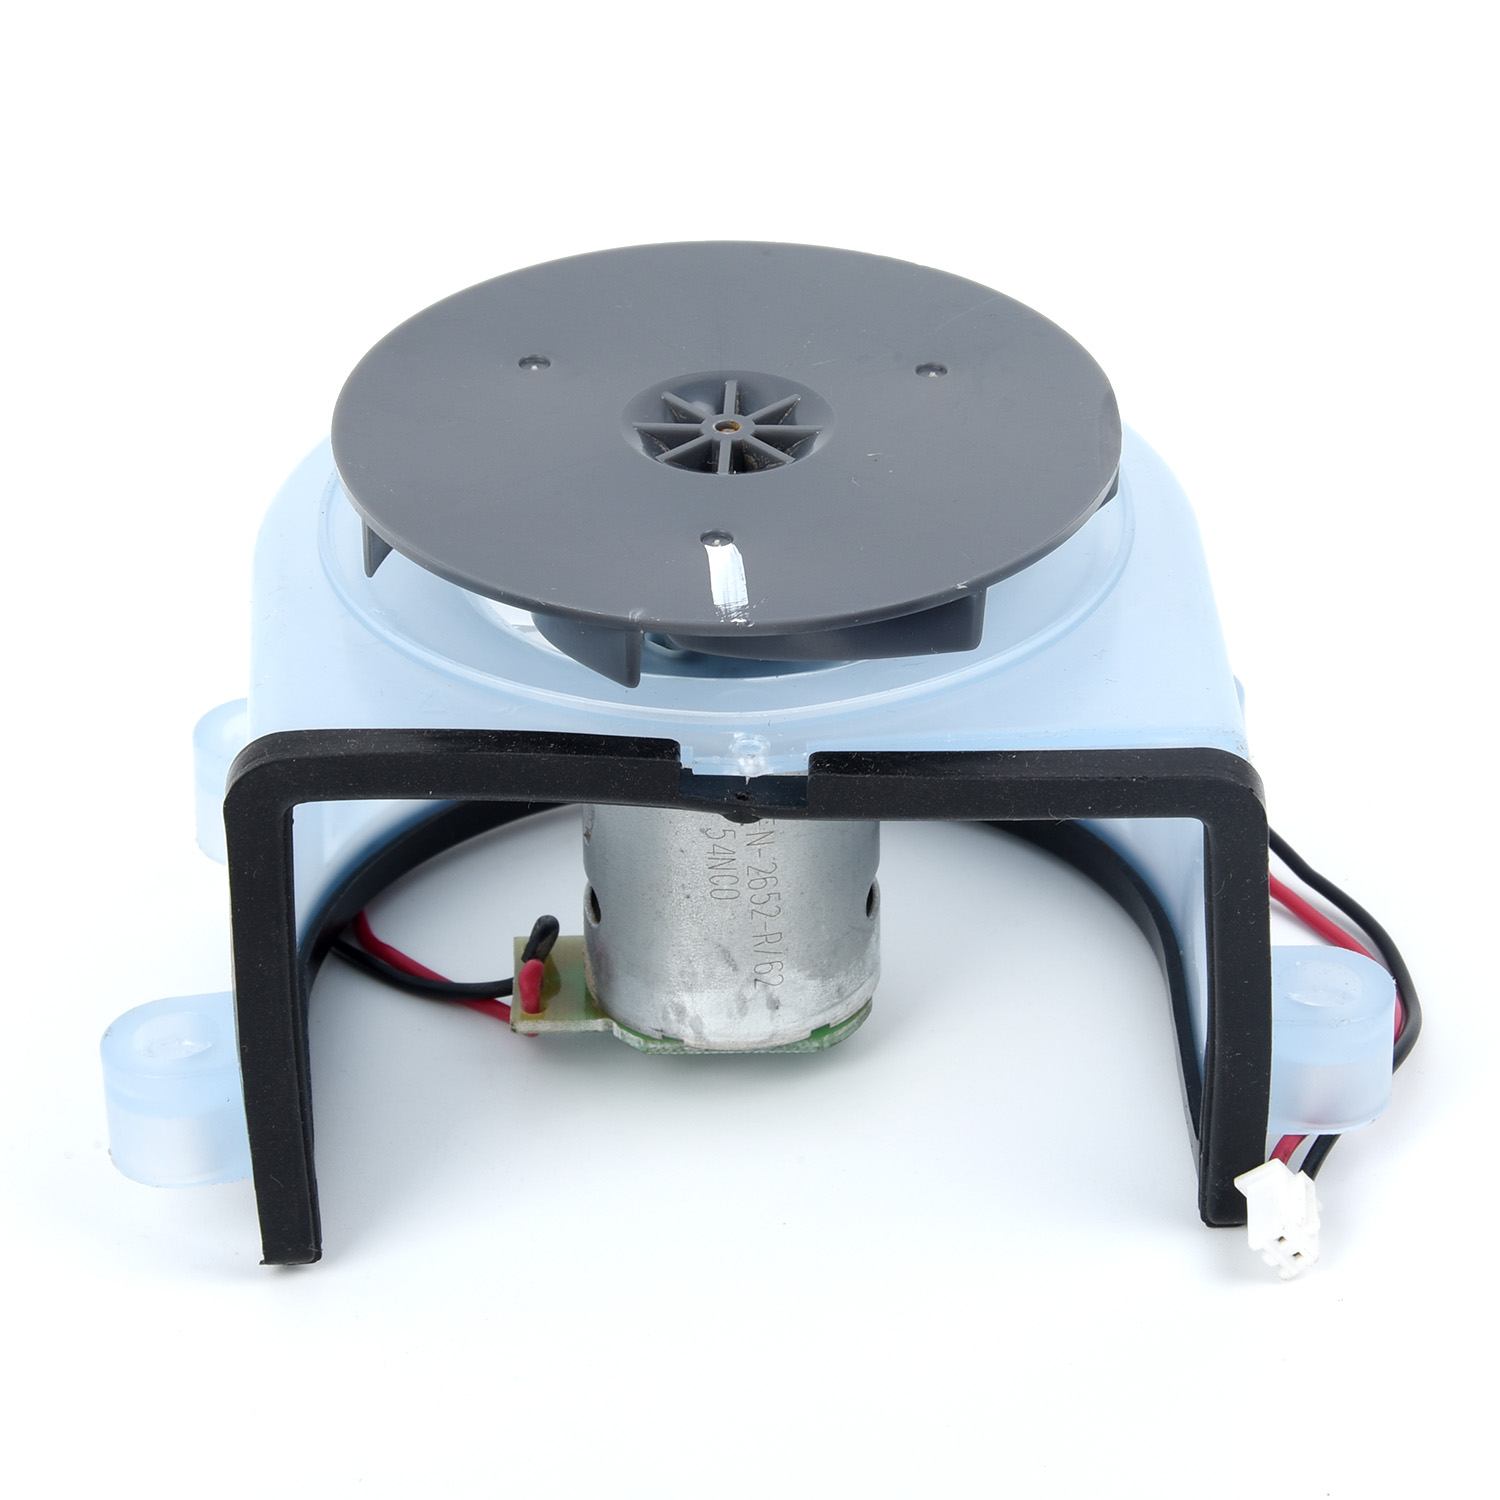 1* Motor Fan Replacement For ILIFE V5s V3s Pro V5s Pro X5 Vacuum Cleaner Parts